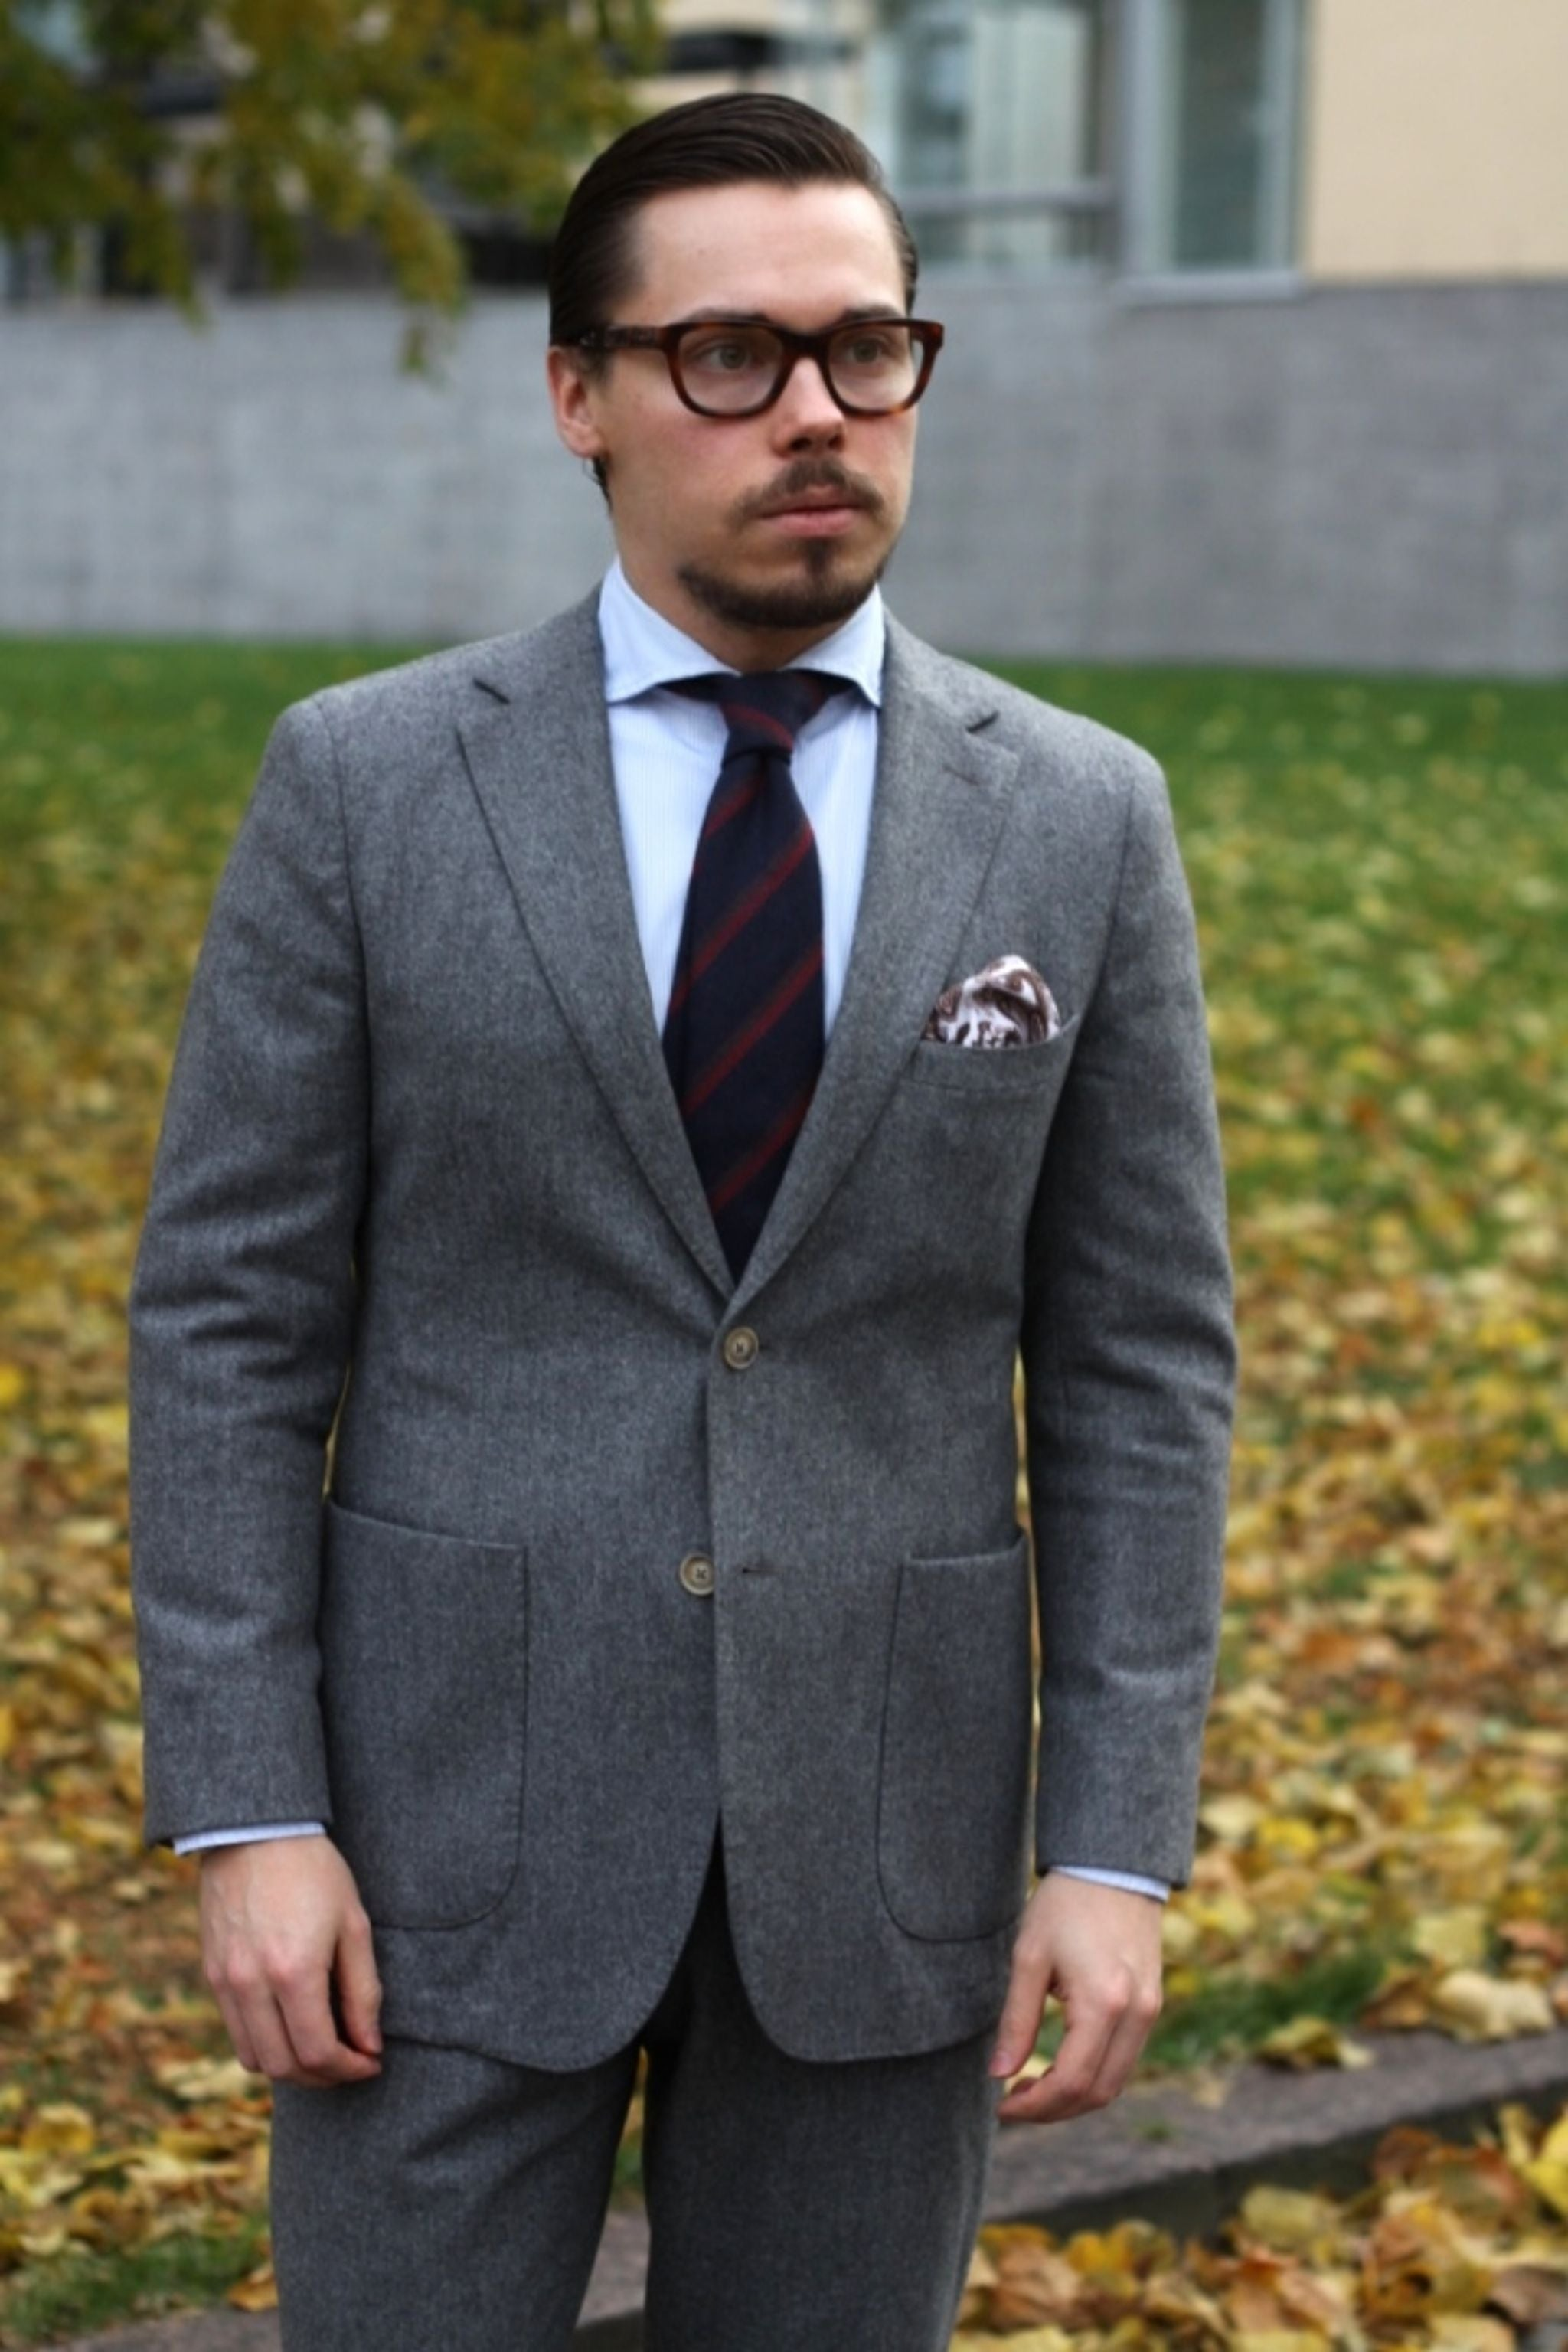 Suit with cashmere tie - Mid-gray flannel suit by Vaatturiliike Sauma